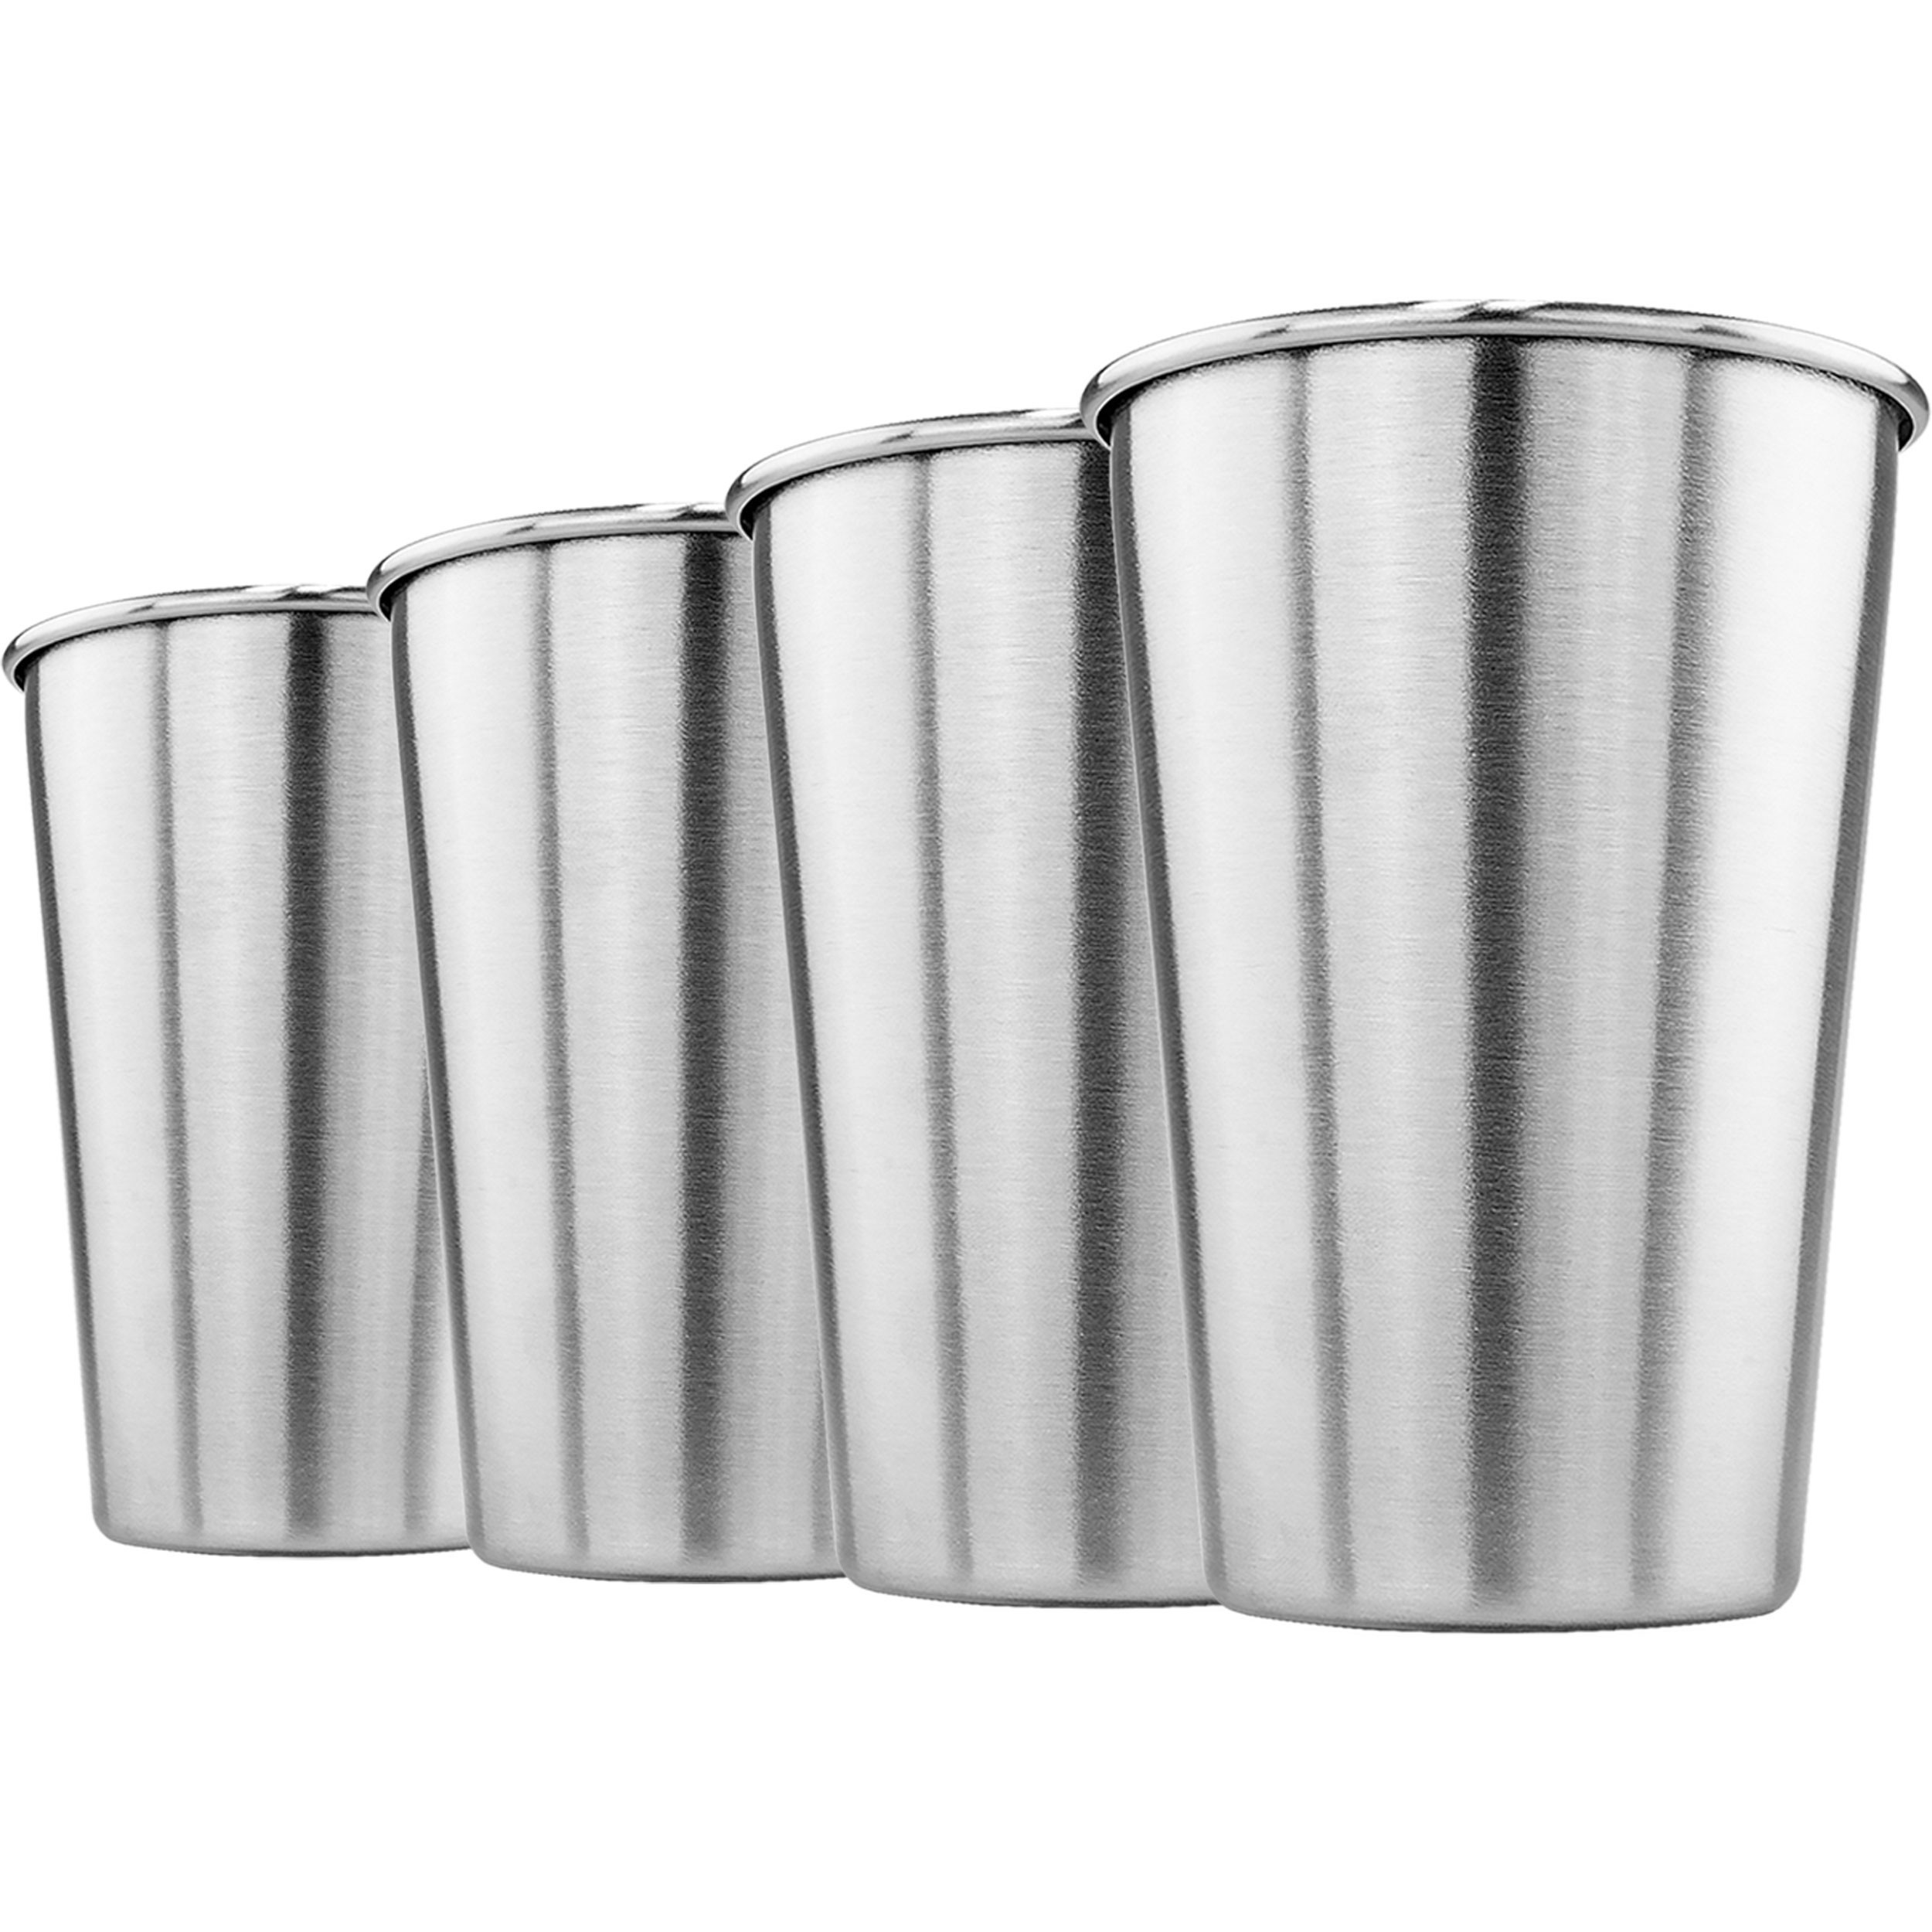 Stainless Steel Pint Cup 16oz, Set of Four